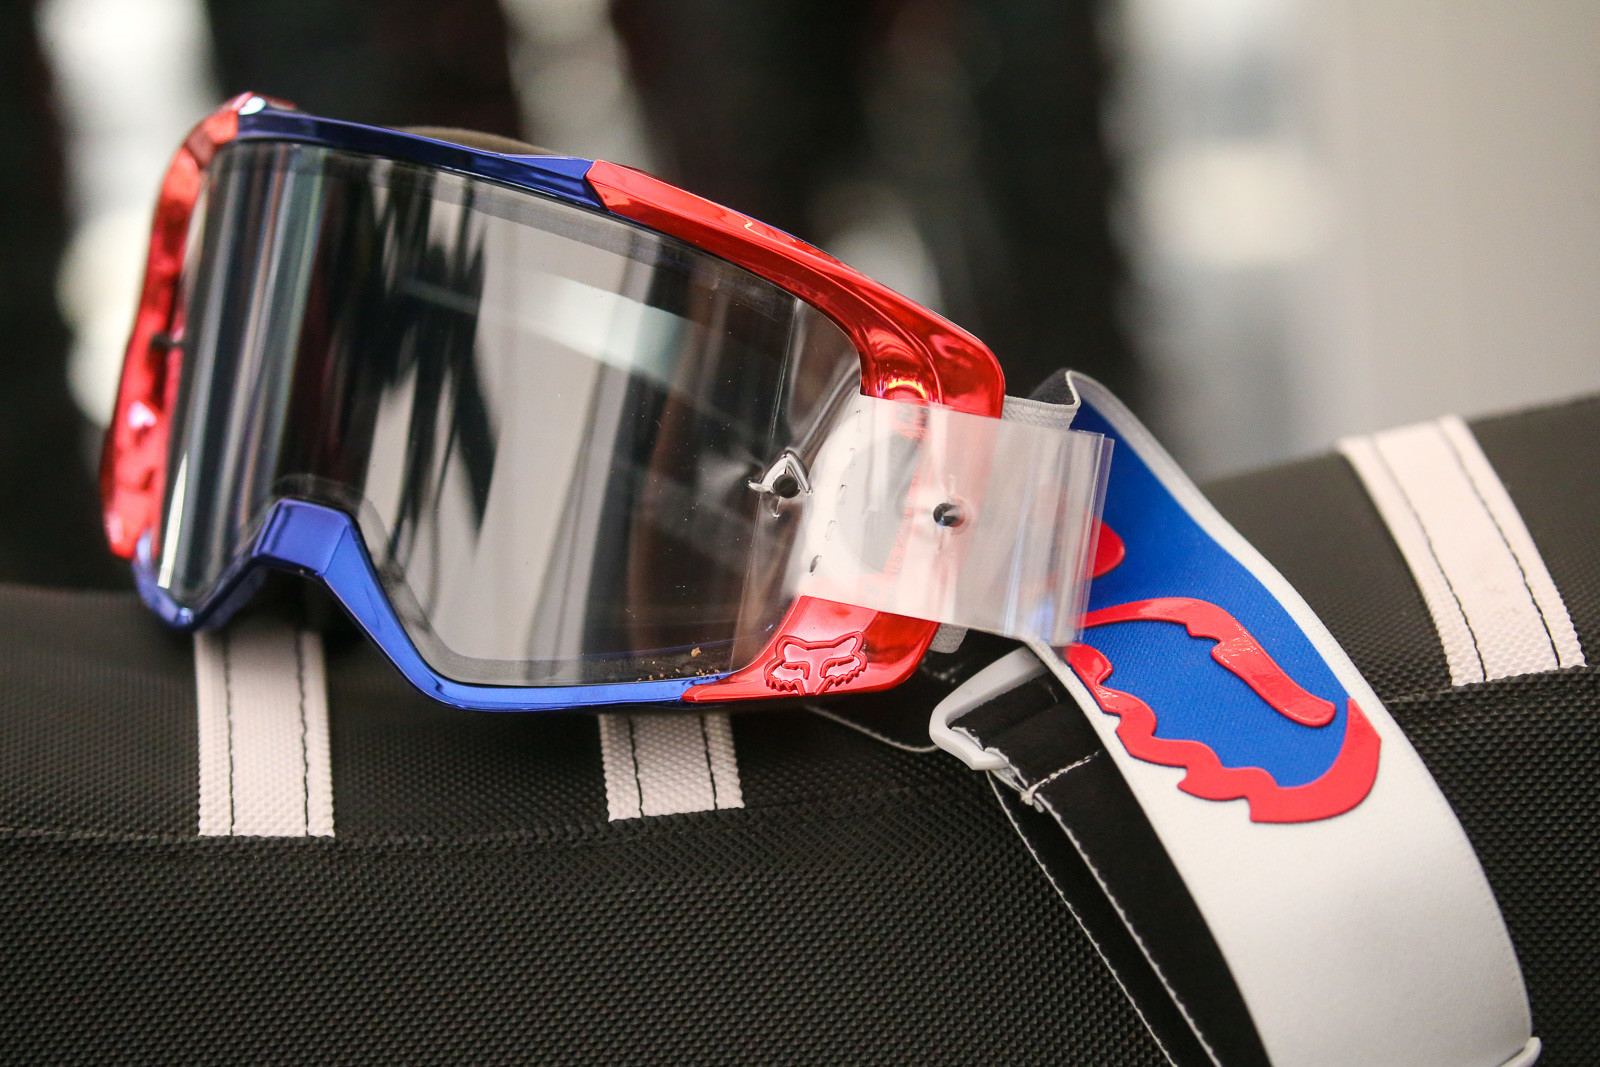 Fox did some patriotic chromed goggles for Adam Cianciarulo and (we think) Ken Roczen.